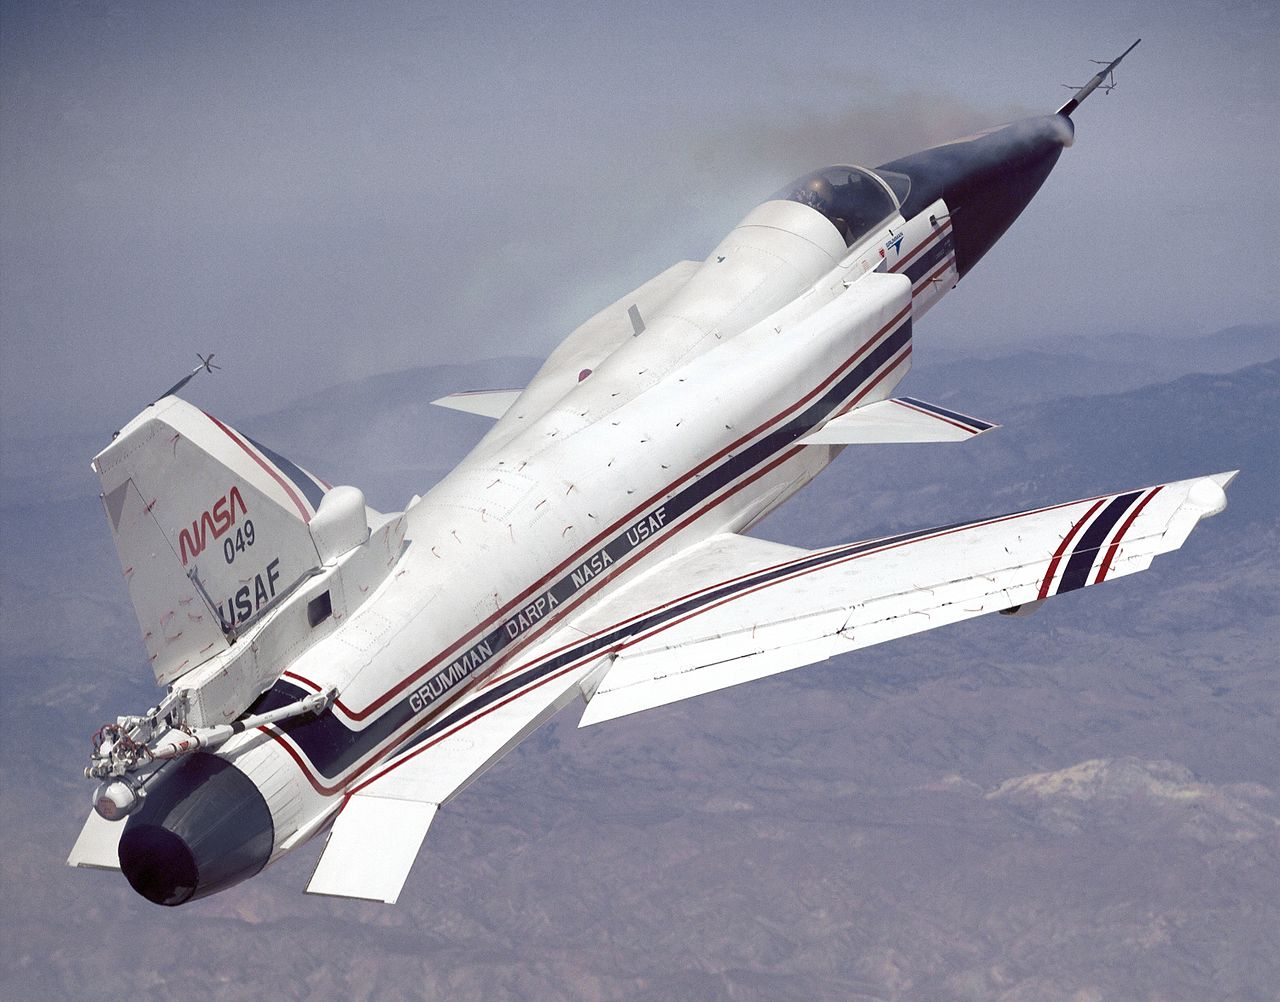 X-29_at_High_Angle_of_Attack_with_Smoke_Generators for comparison